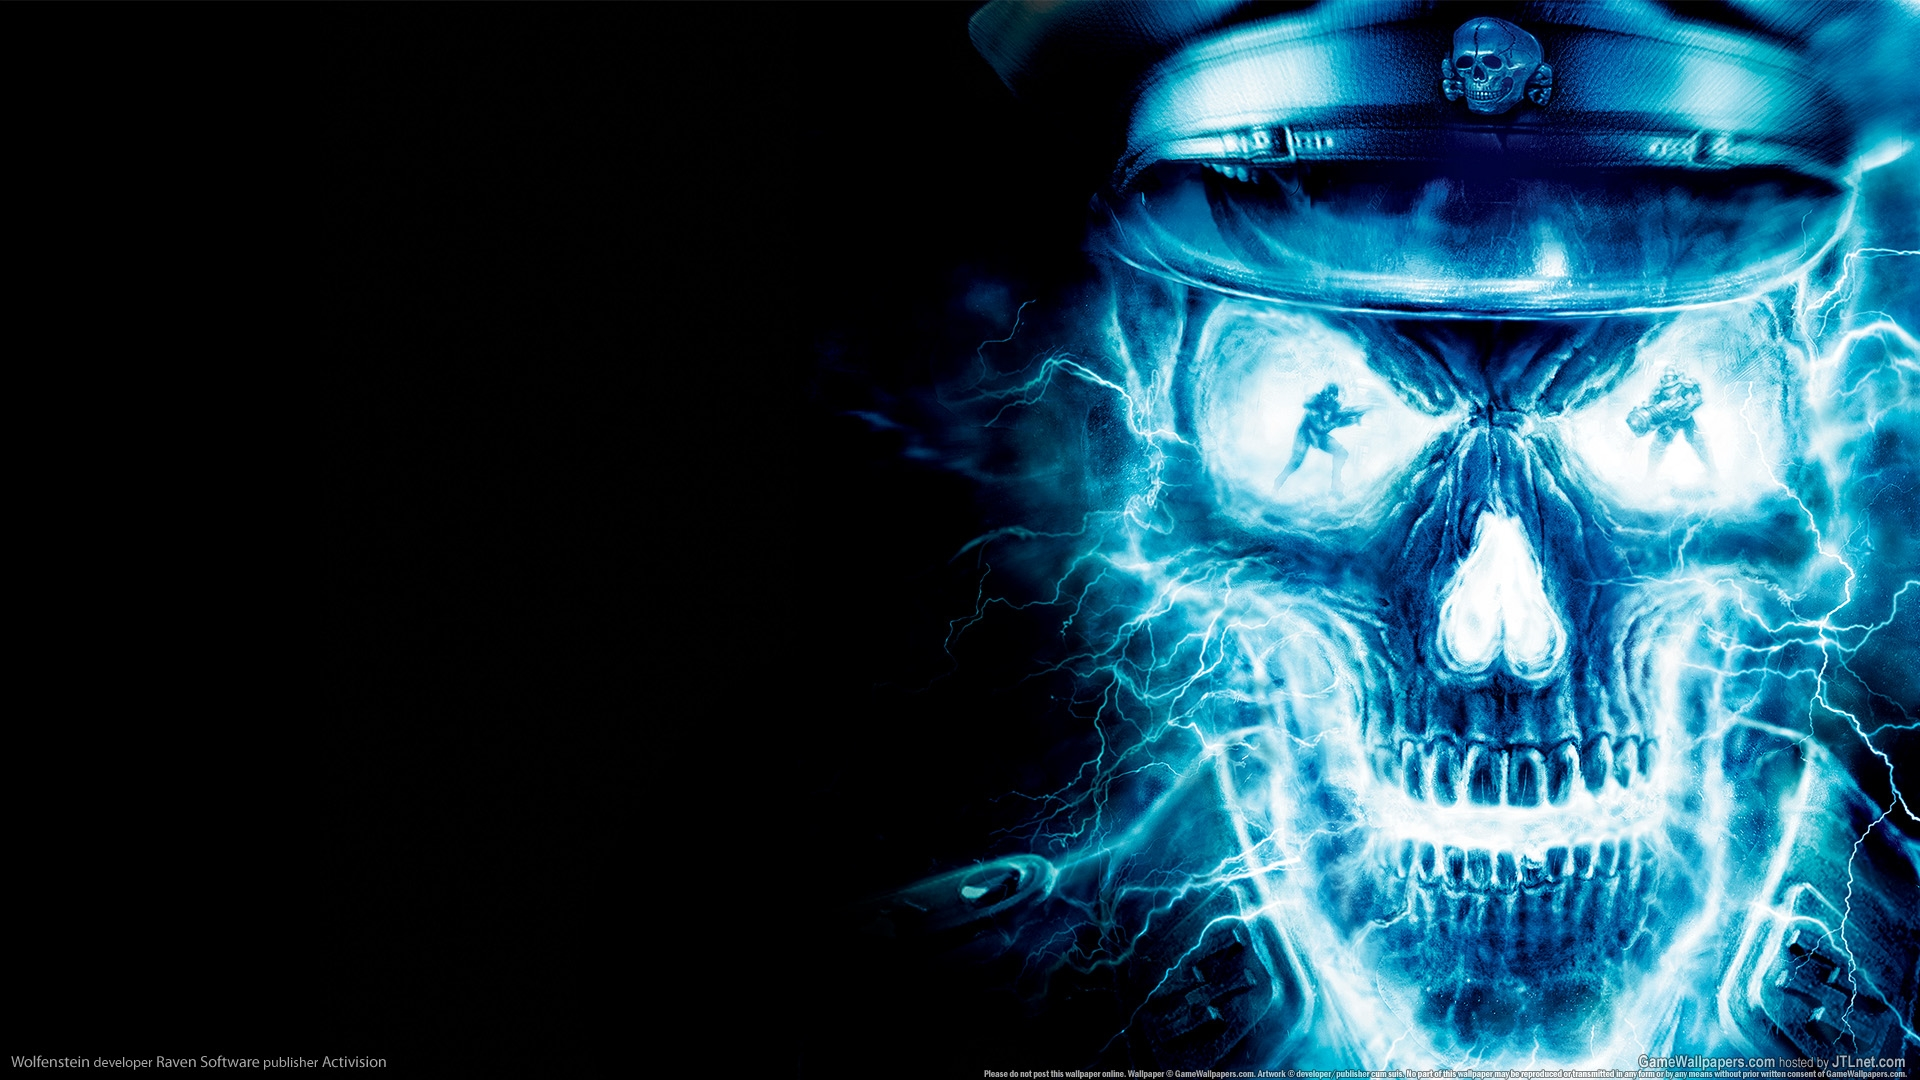 Cool-Skulls-Pulse-1920×1080-Awesome-skull-backgrounds-Adorab-wallpaper-wp3804050